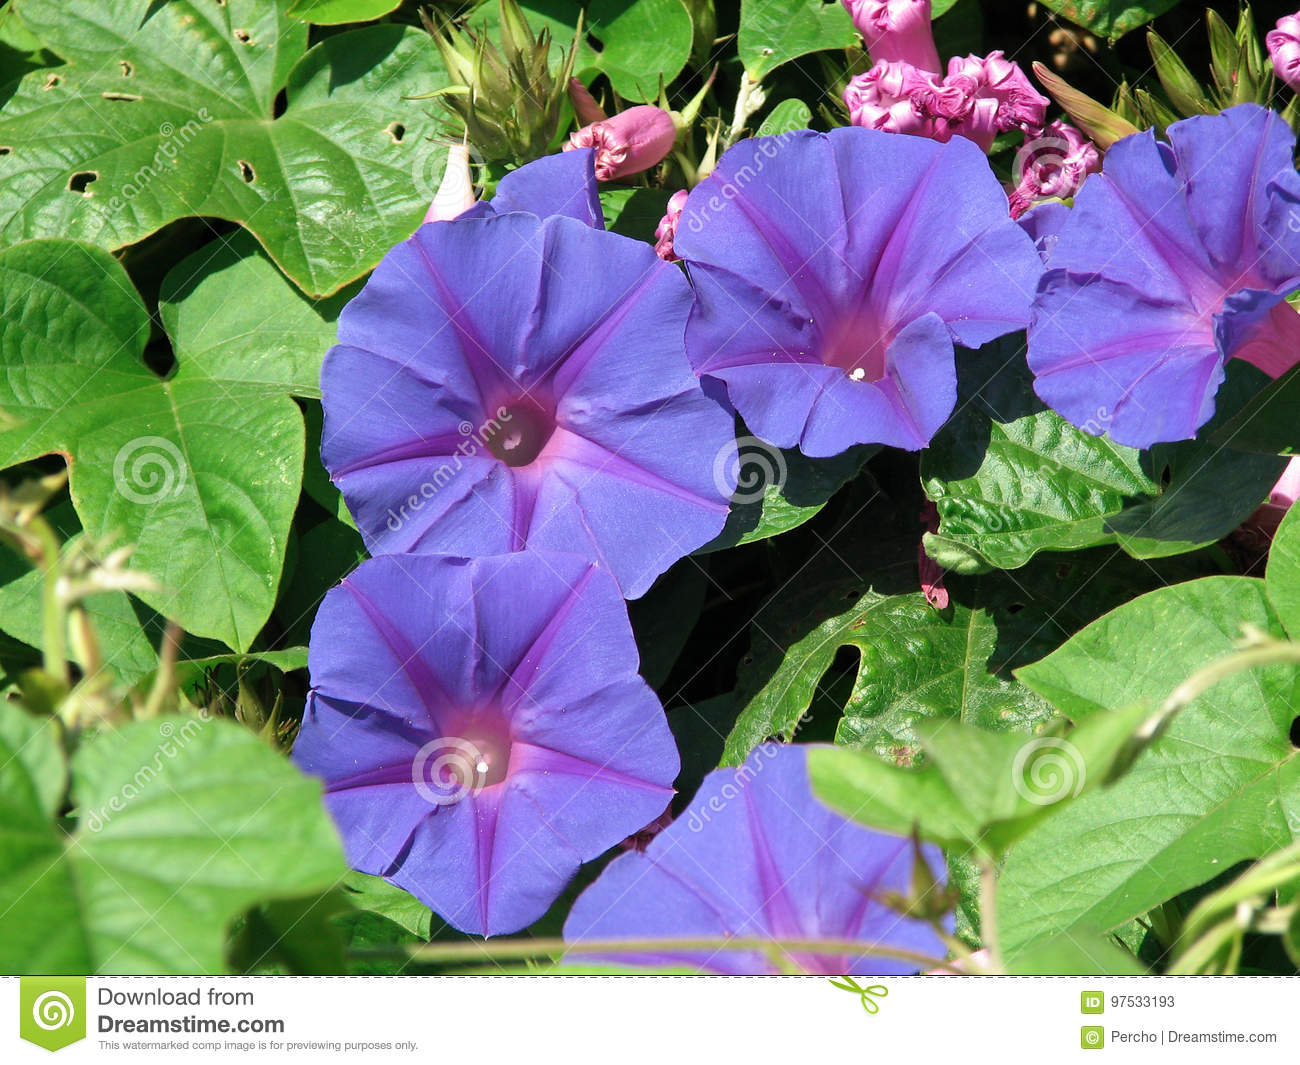 Blue Dawn Flower Stock Image Image Of Indica Flowers 97533193